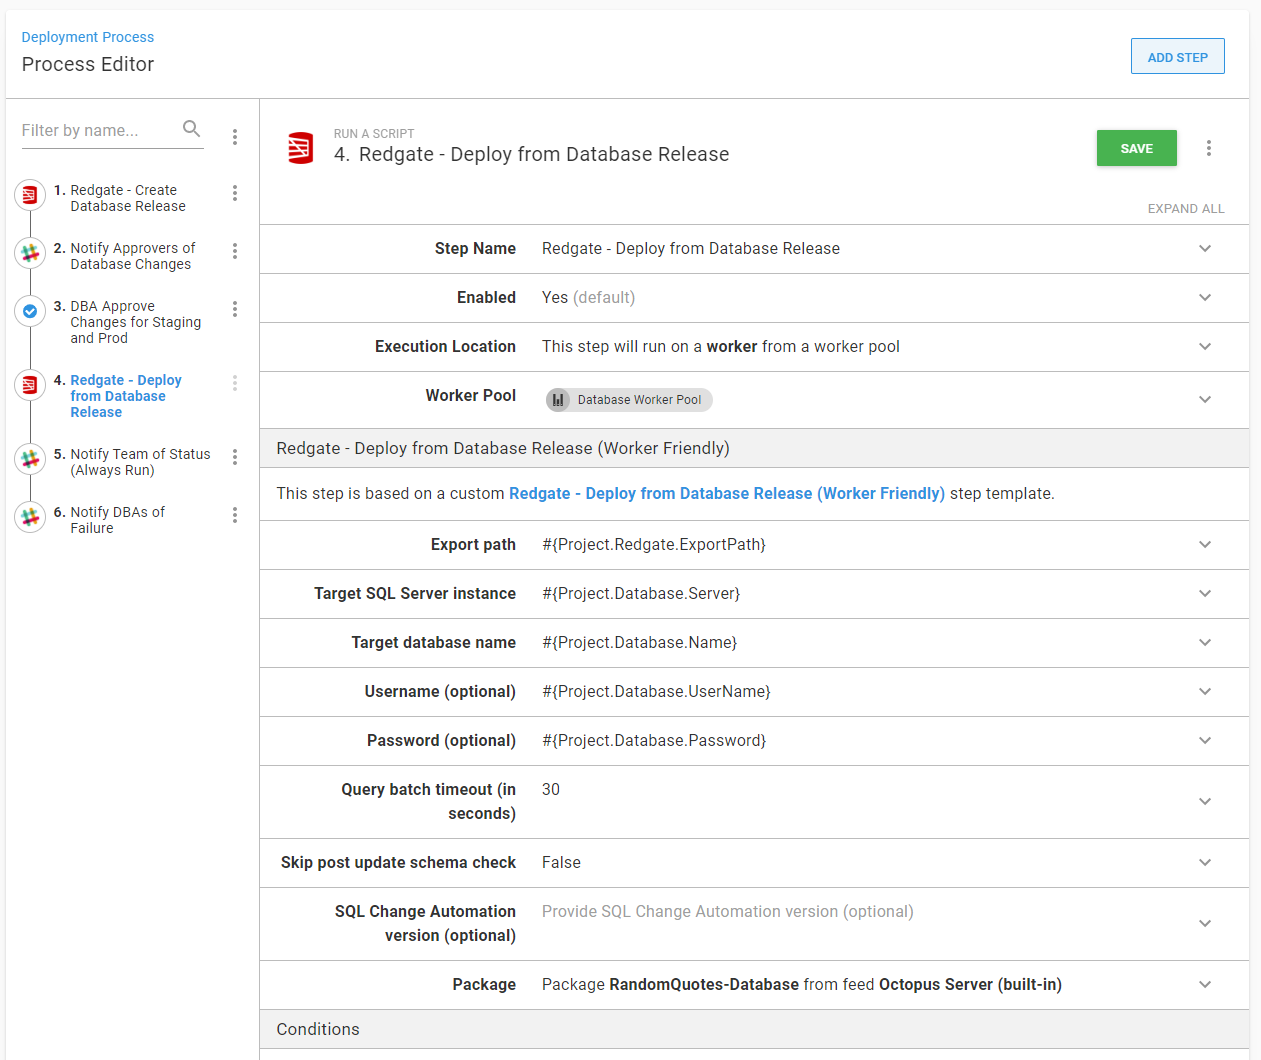 Deploy from database release step